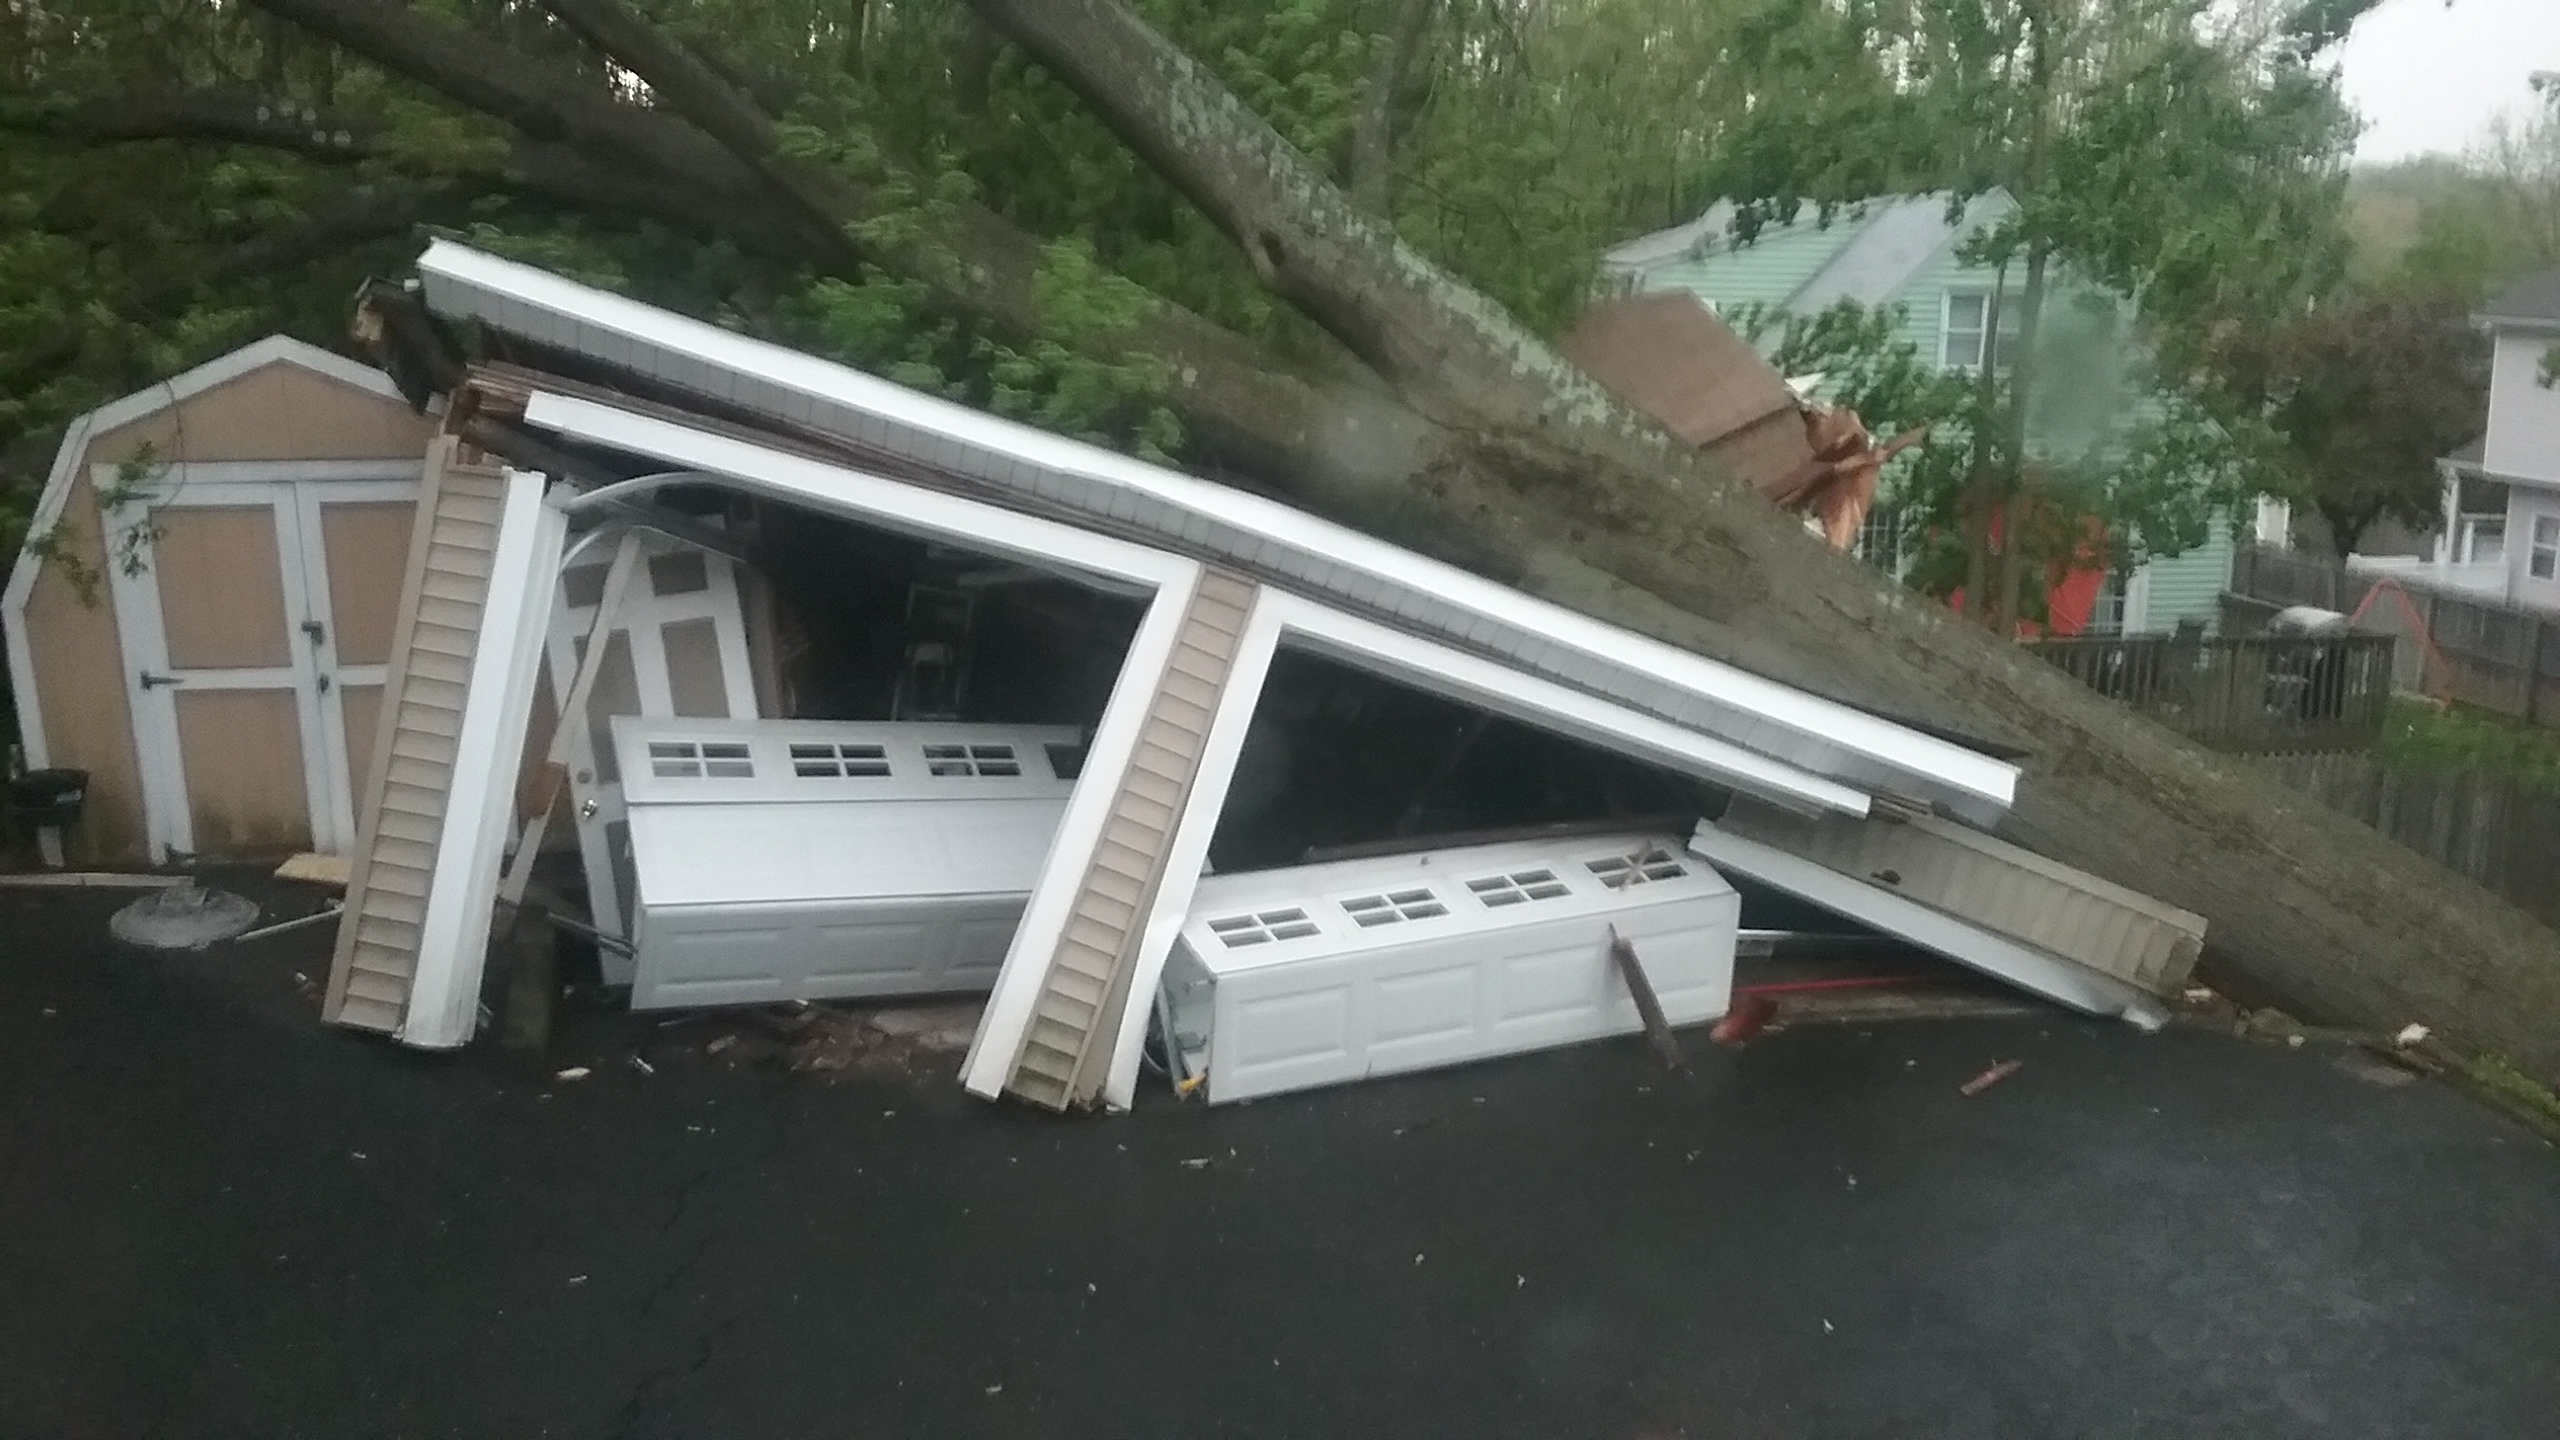 <div class='meta'><div class='origin-logo' data-origin='WABC'></div><span class='caption-text' data-credit='Al Vallese'>A tree fell during the storms, crushing a garage along Wilmuth Street in Mahwah, New Jersey.</span></div>